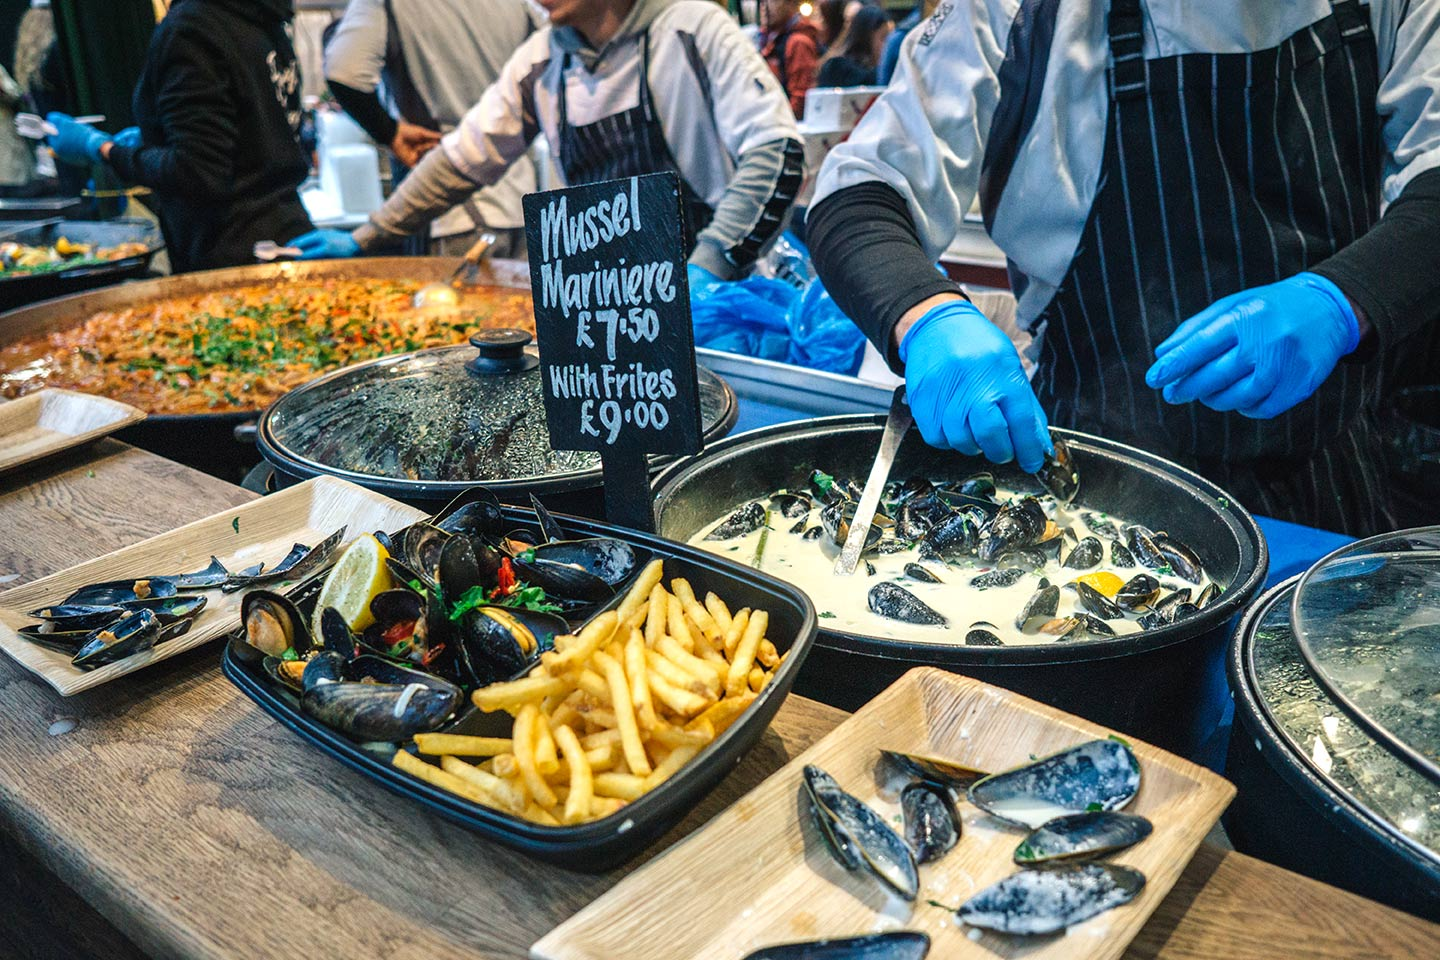 mussels and frites stall at Borough market